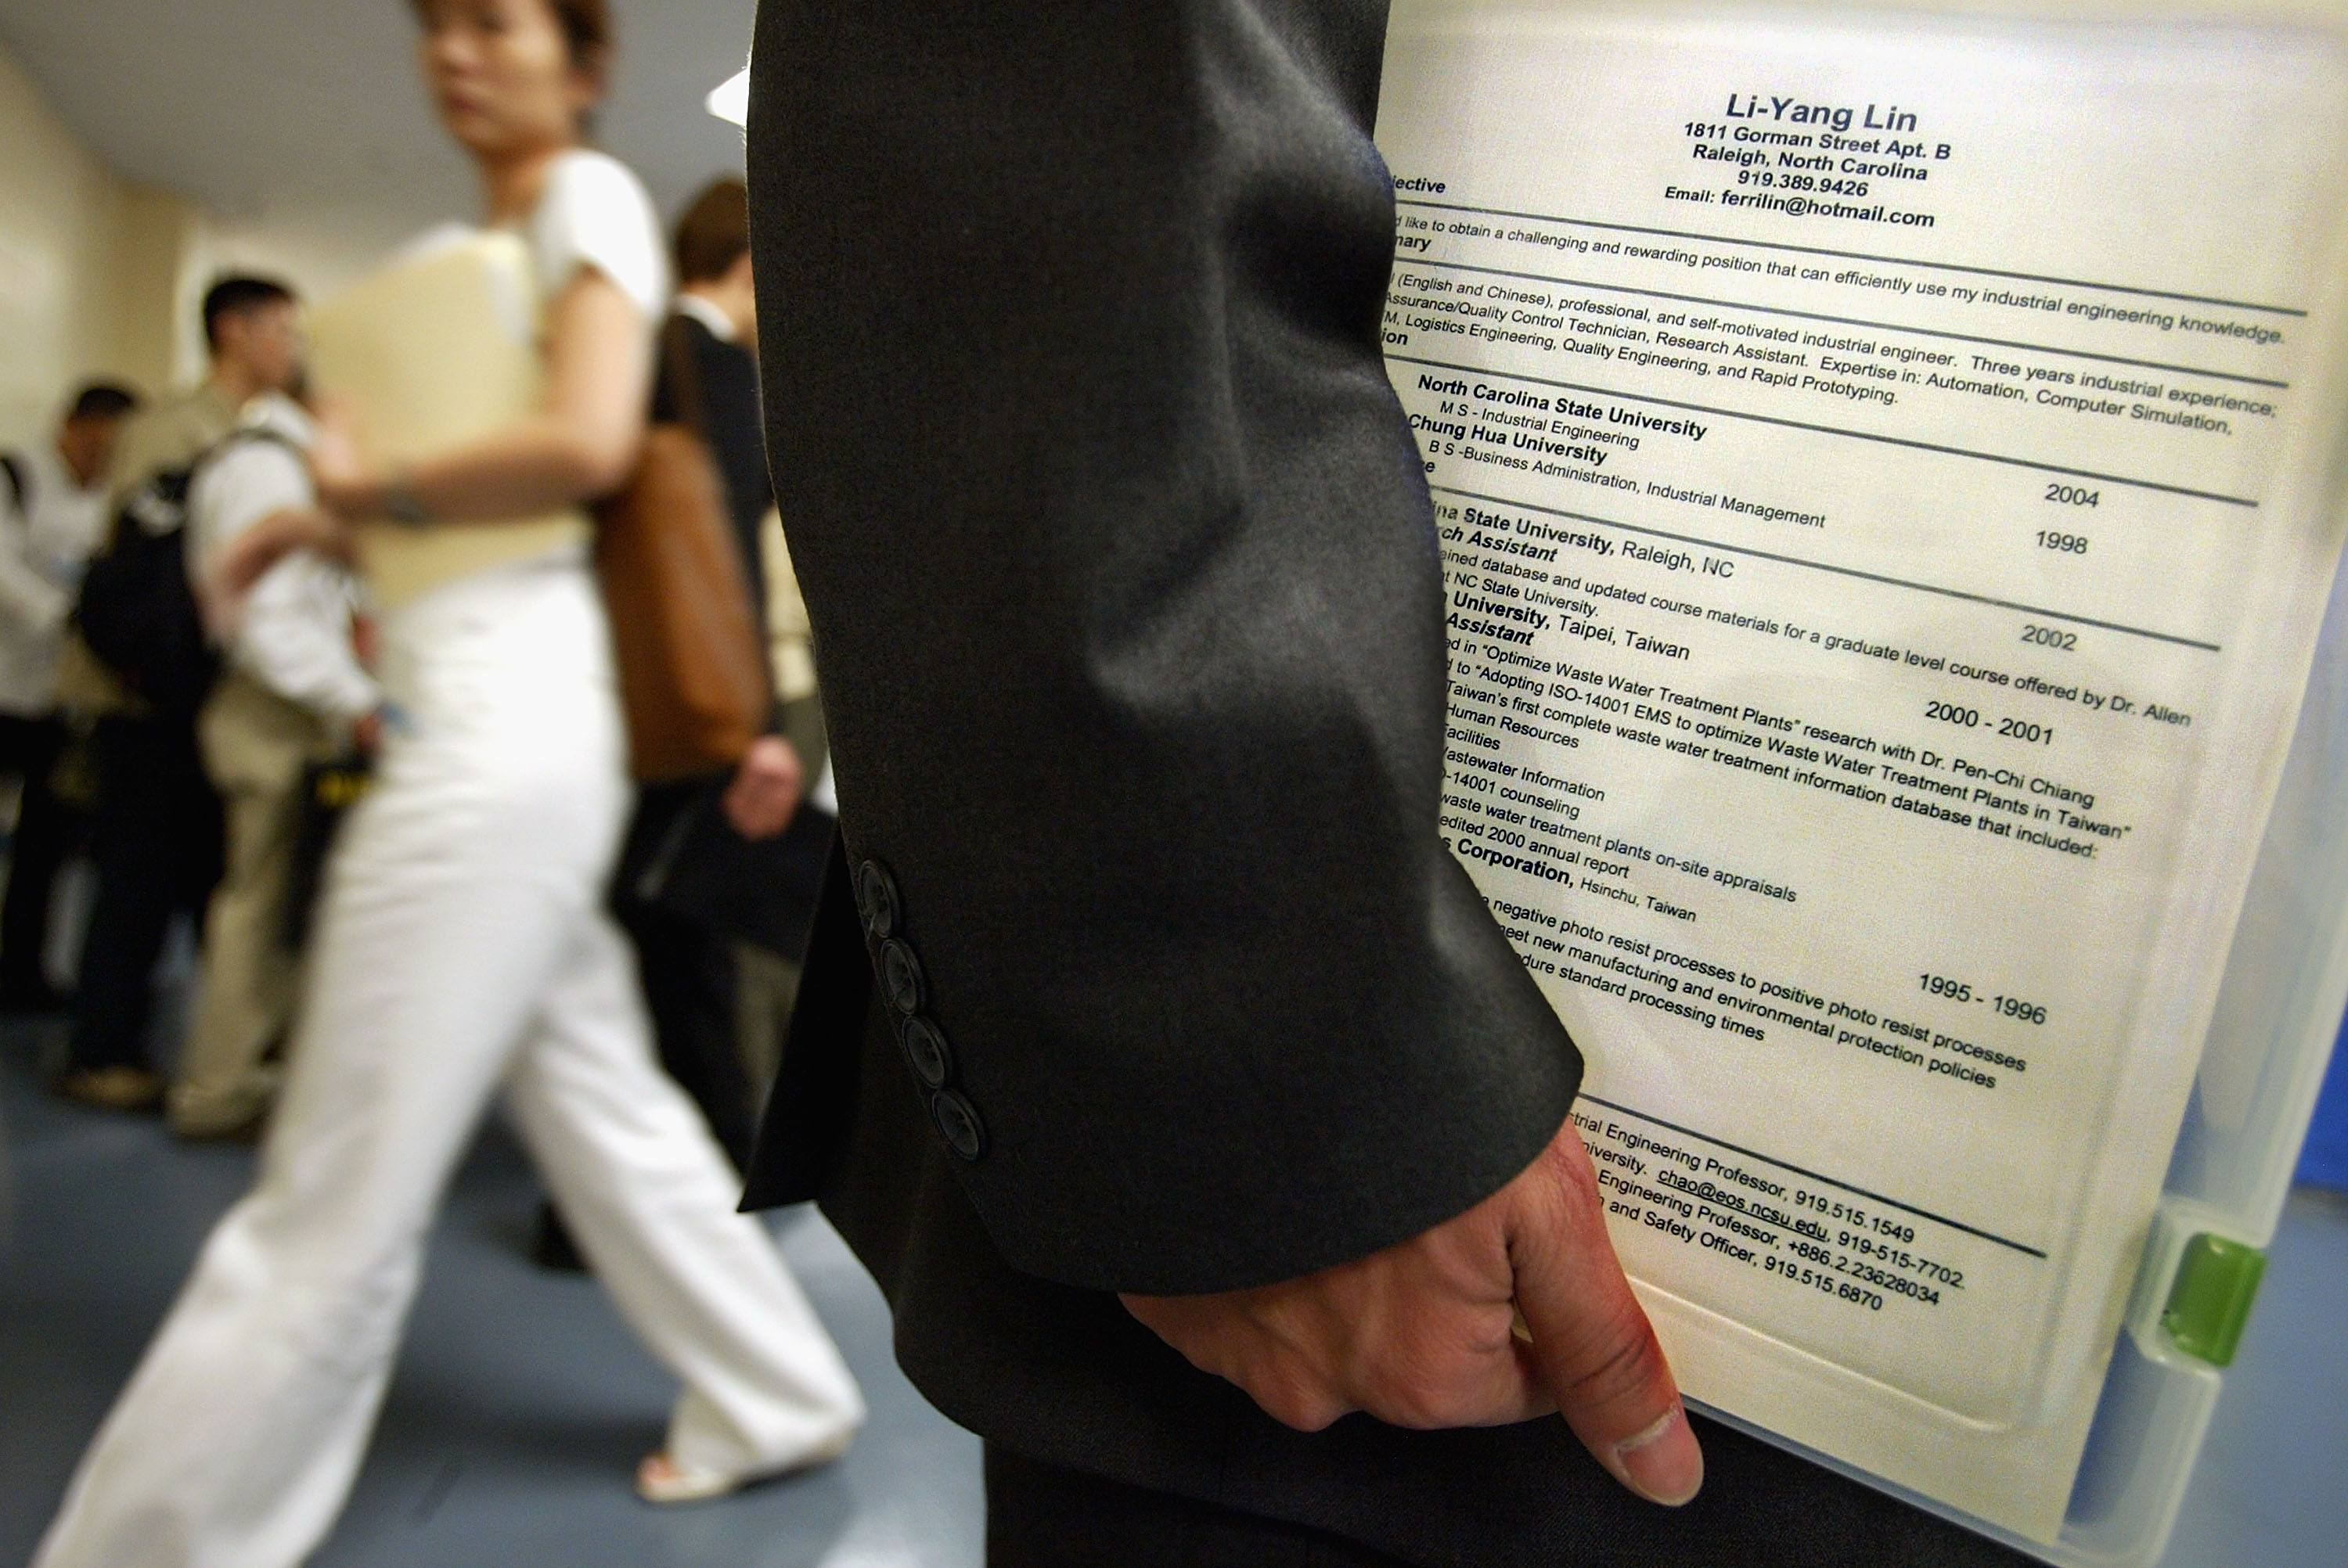 A man holds his buzzword-heavy resume at a job fair